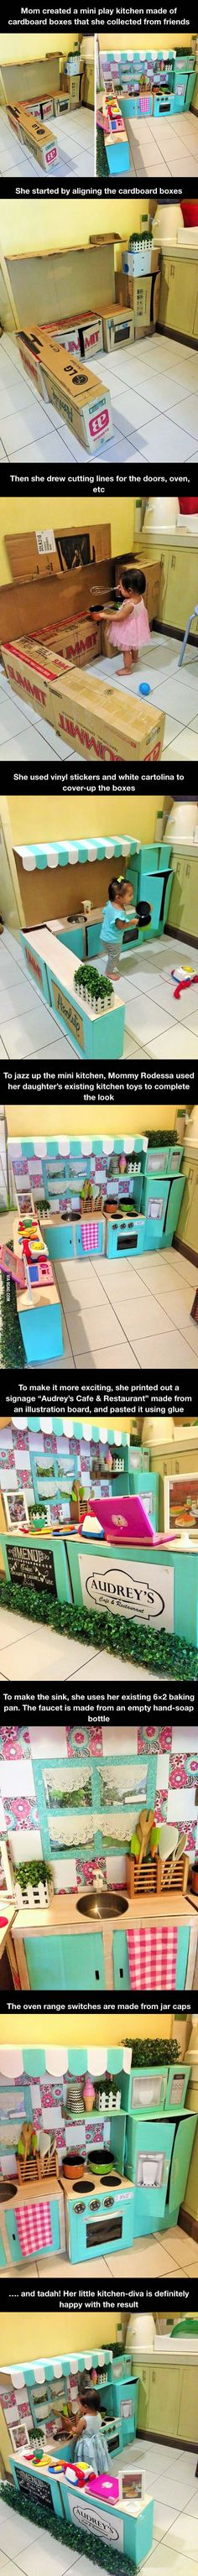 This Mom Created A Mini Play Kitchen Made Of Cardboard Boxes For Her Toddler - 9GAG